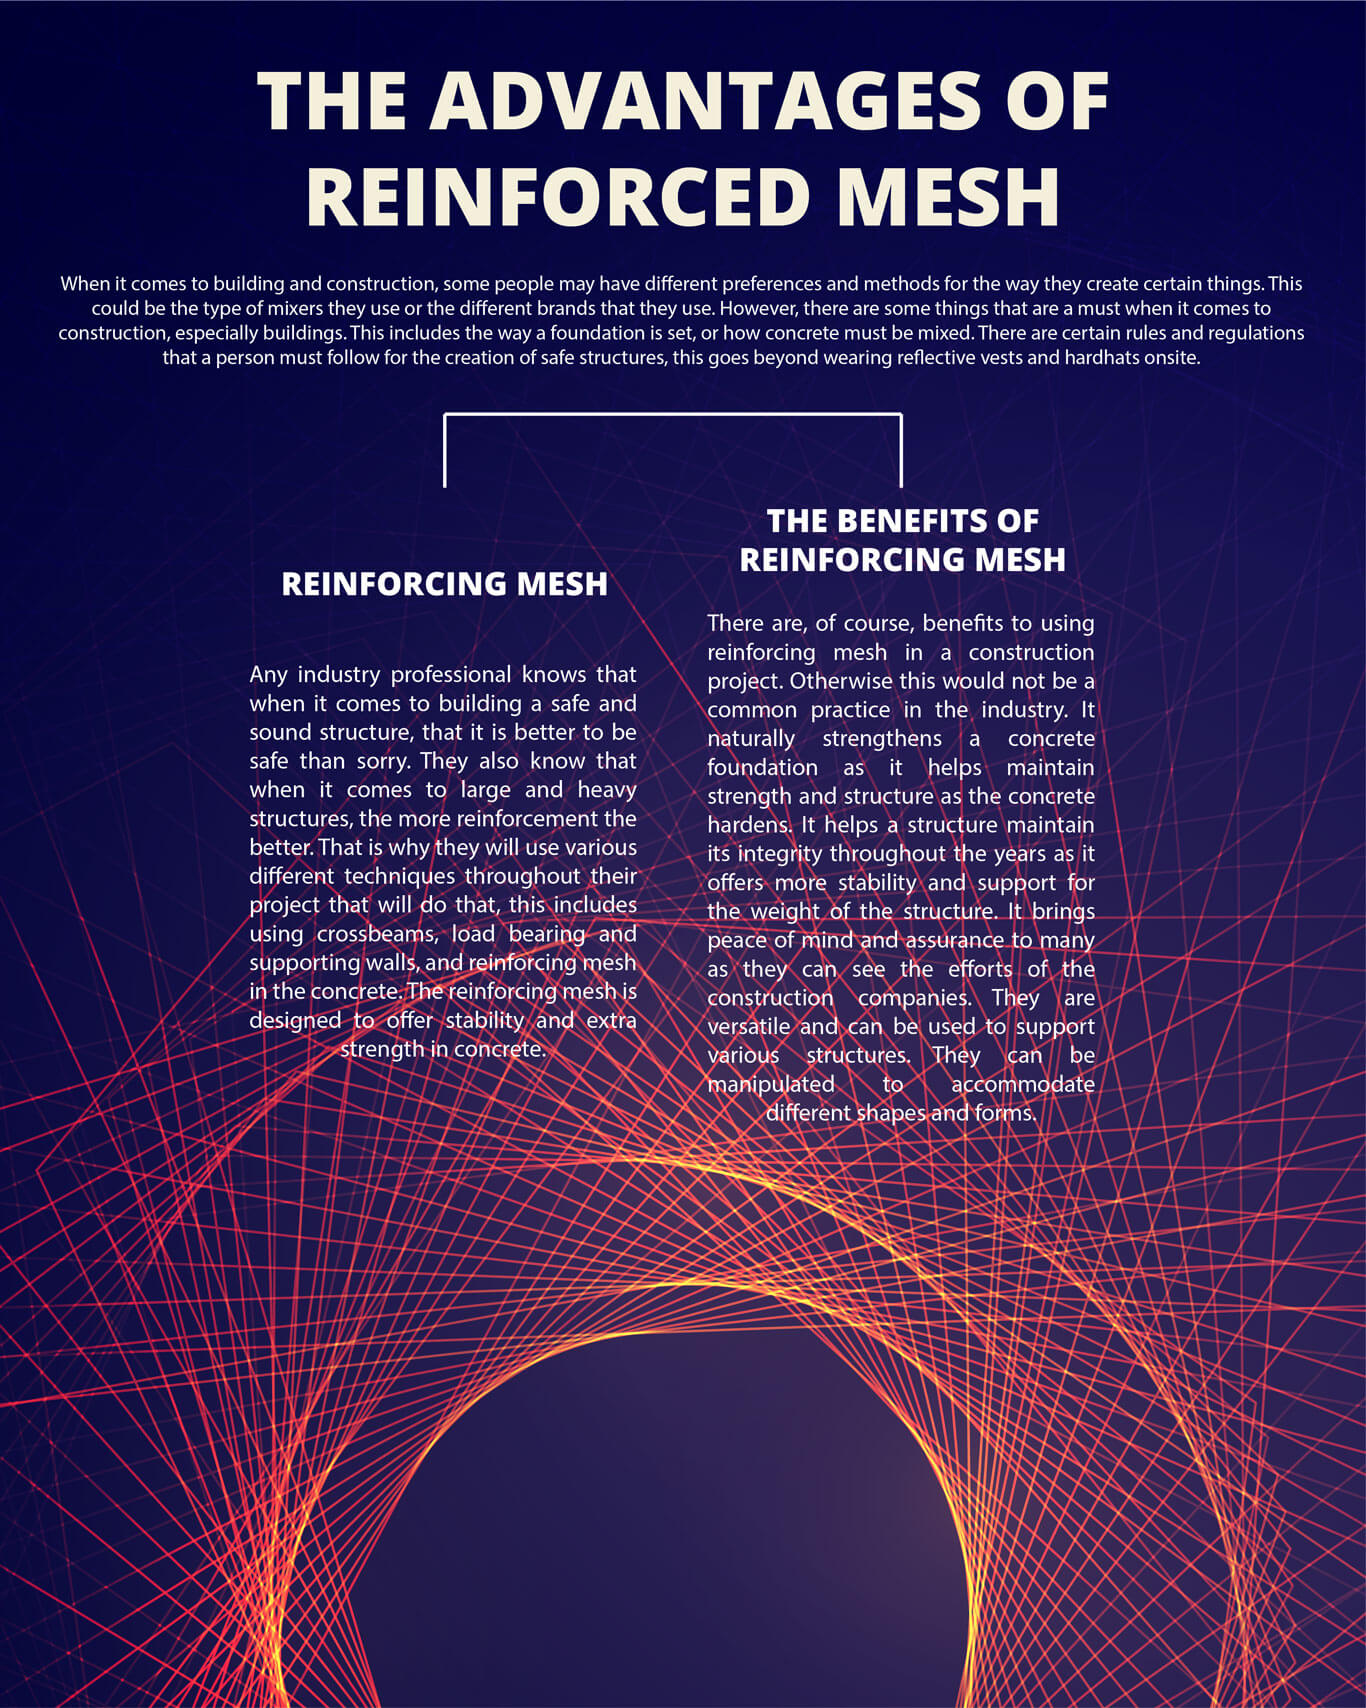 The Advantages of Reinforcing Mesh